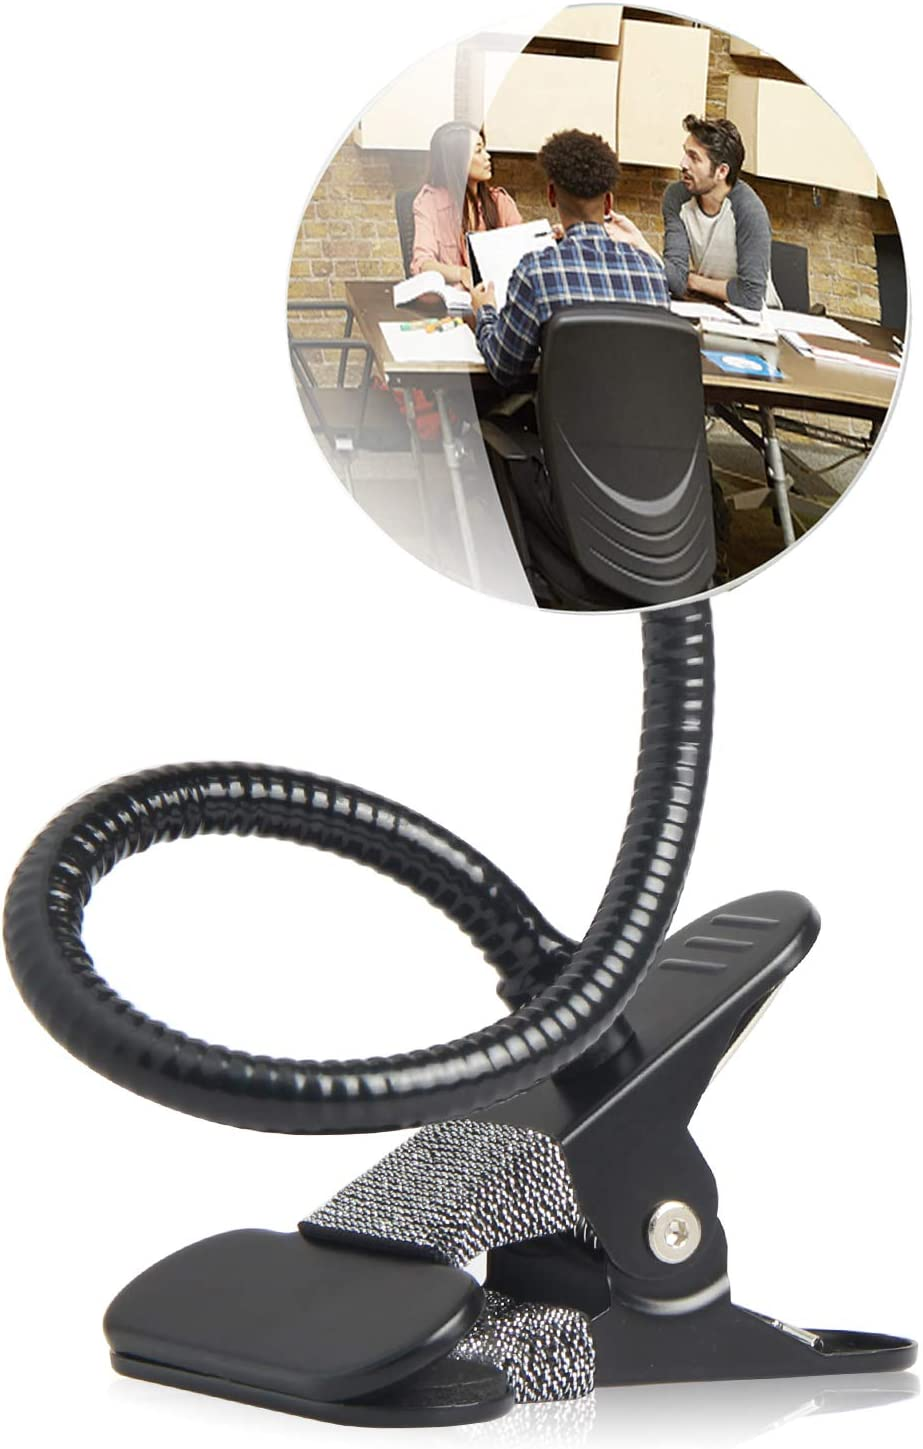 """Clip On Cubicle Mirror, Computer Rearview Mirror, Convex Mirror for Personal Safety or Security Cabinet Desk Rear View Monitors (3.35"""" Round) by CQNET"""